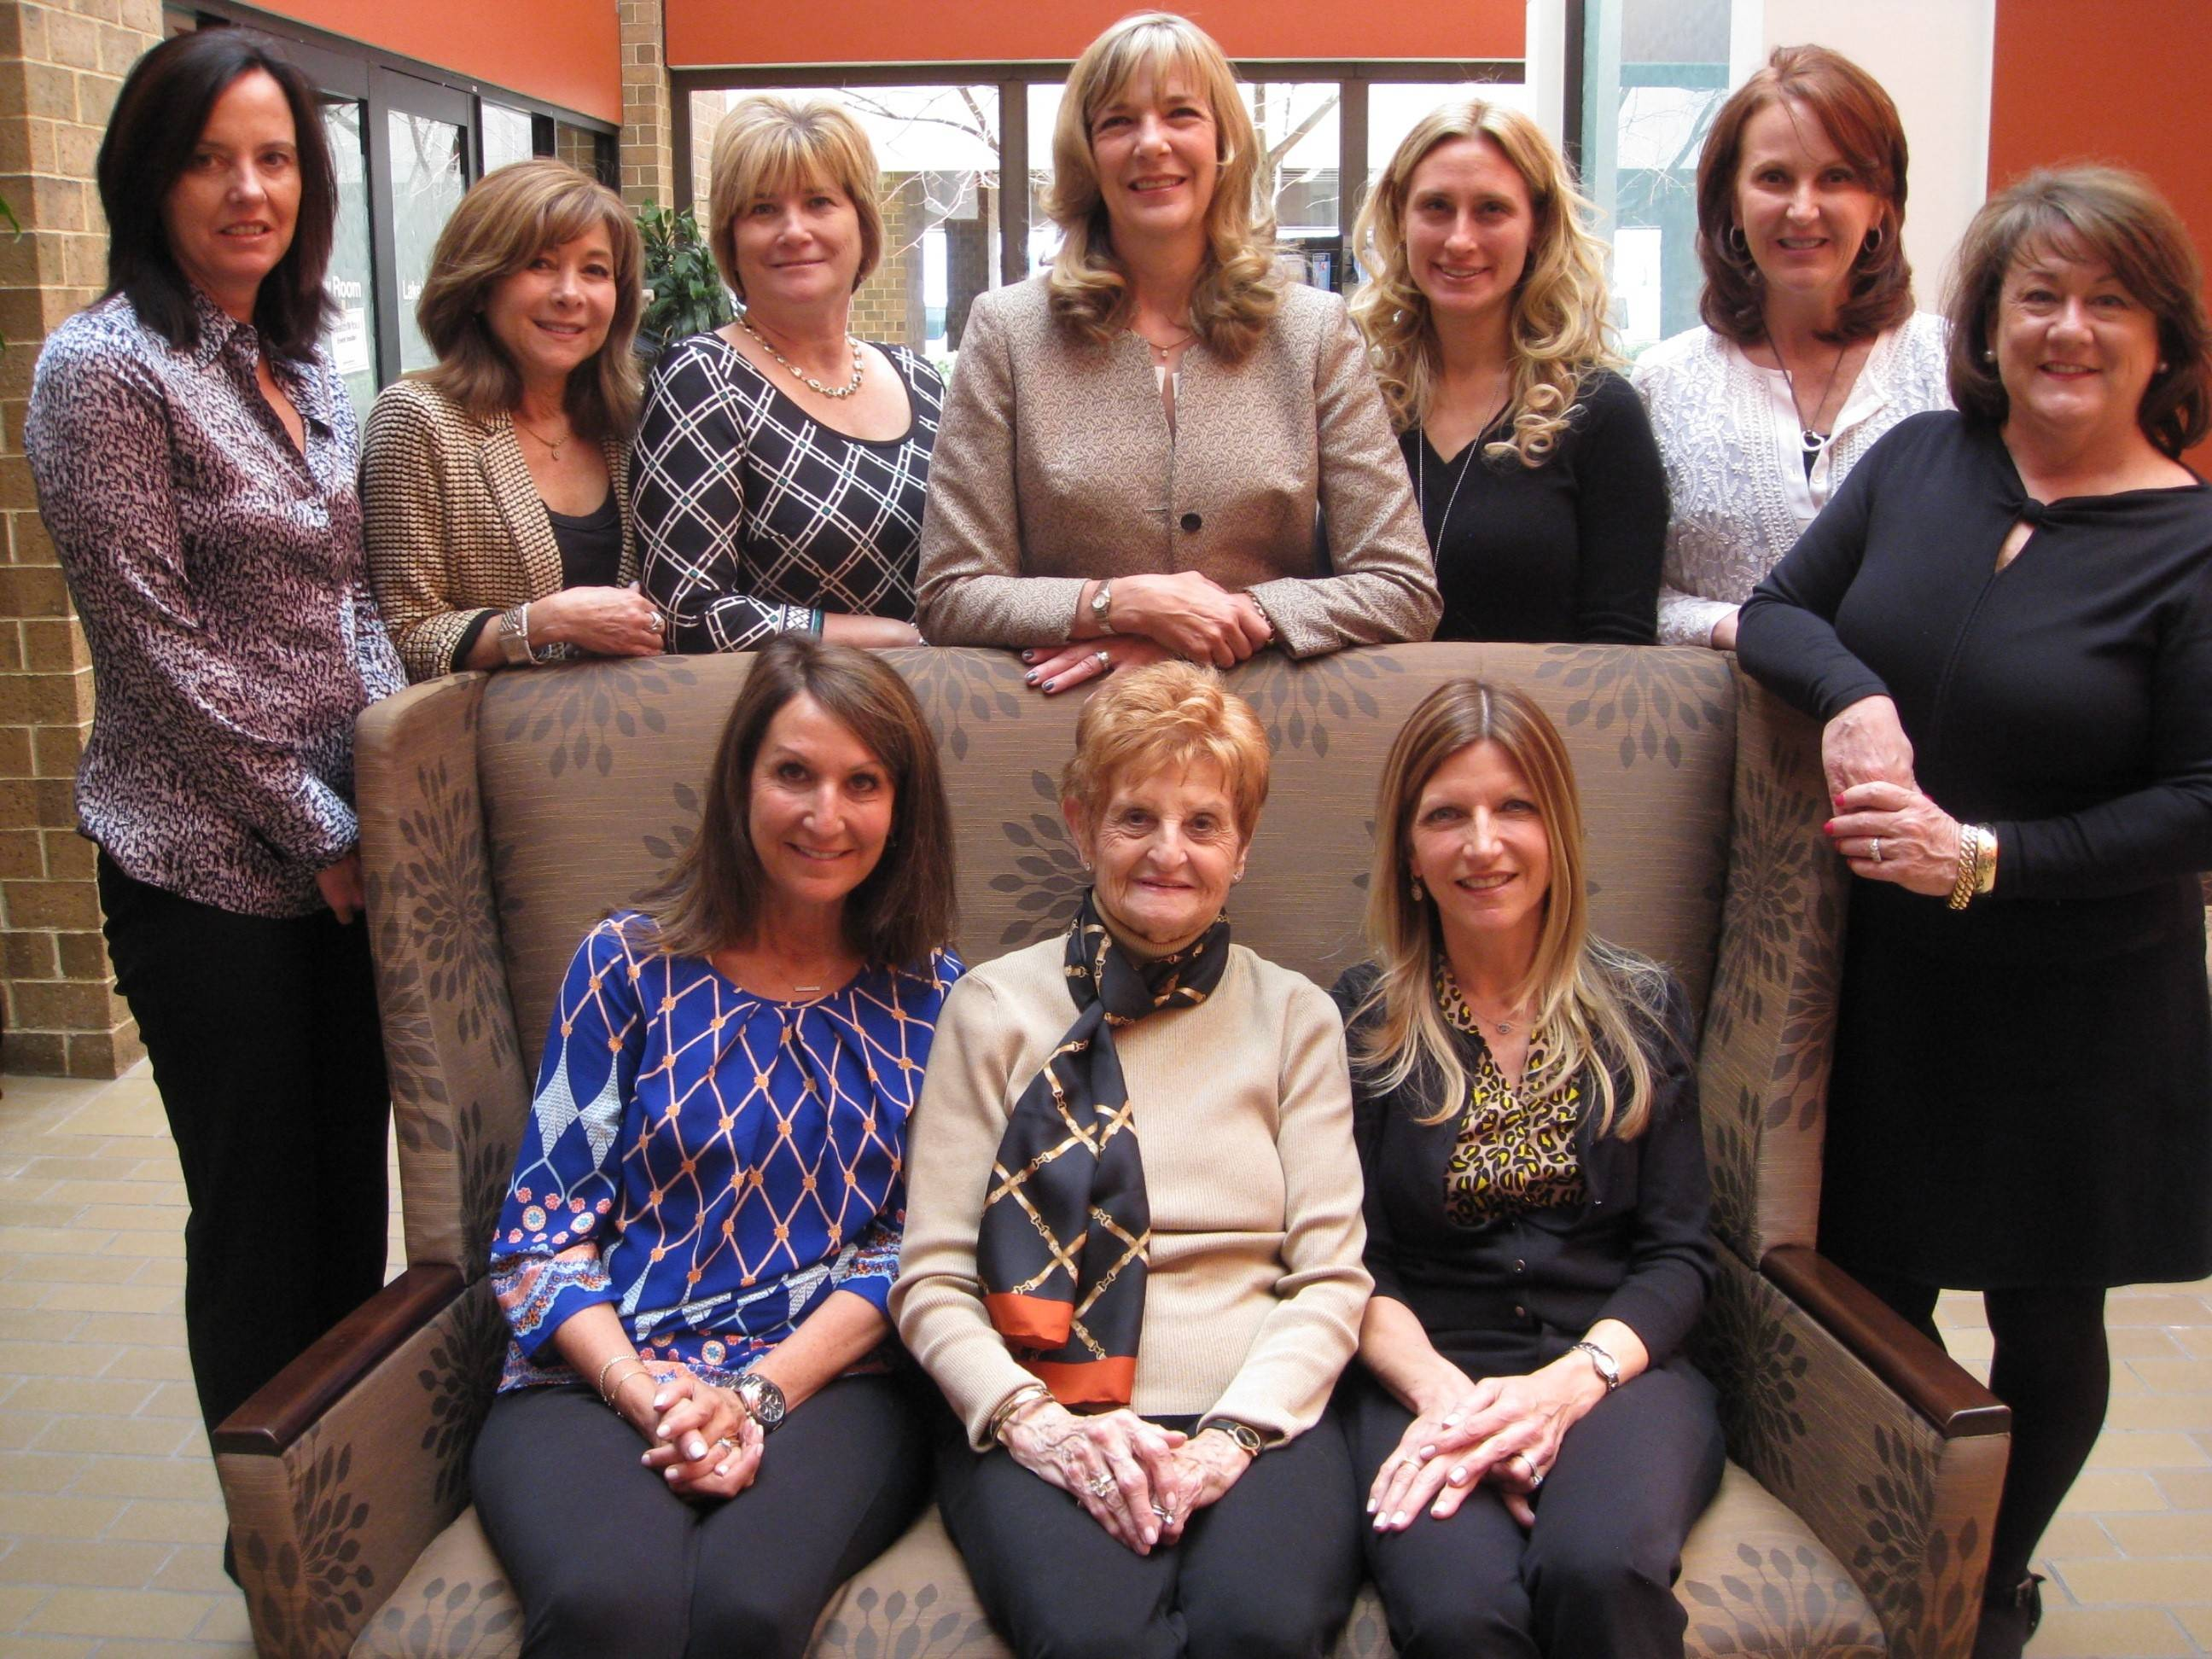 2014 Gala Committee members are: Back row: Kim Gockenbach, Lori Young, Kellie Hartman, Kathy Liska, Lauren Brynjelsen, Mary McGregor and Cindi Kahn; front row: Barb Warheit, Bettye Traylor and  Kendra Rosen. Not pictured: Larry Arndt, Alison Bozile, Cory Lichtenberger and Jeanne Varwig.